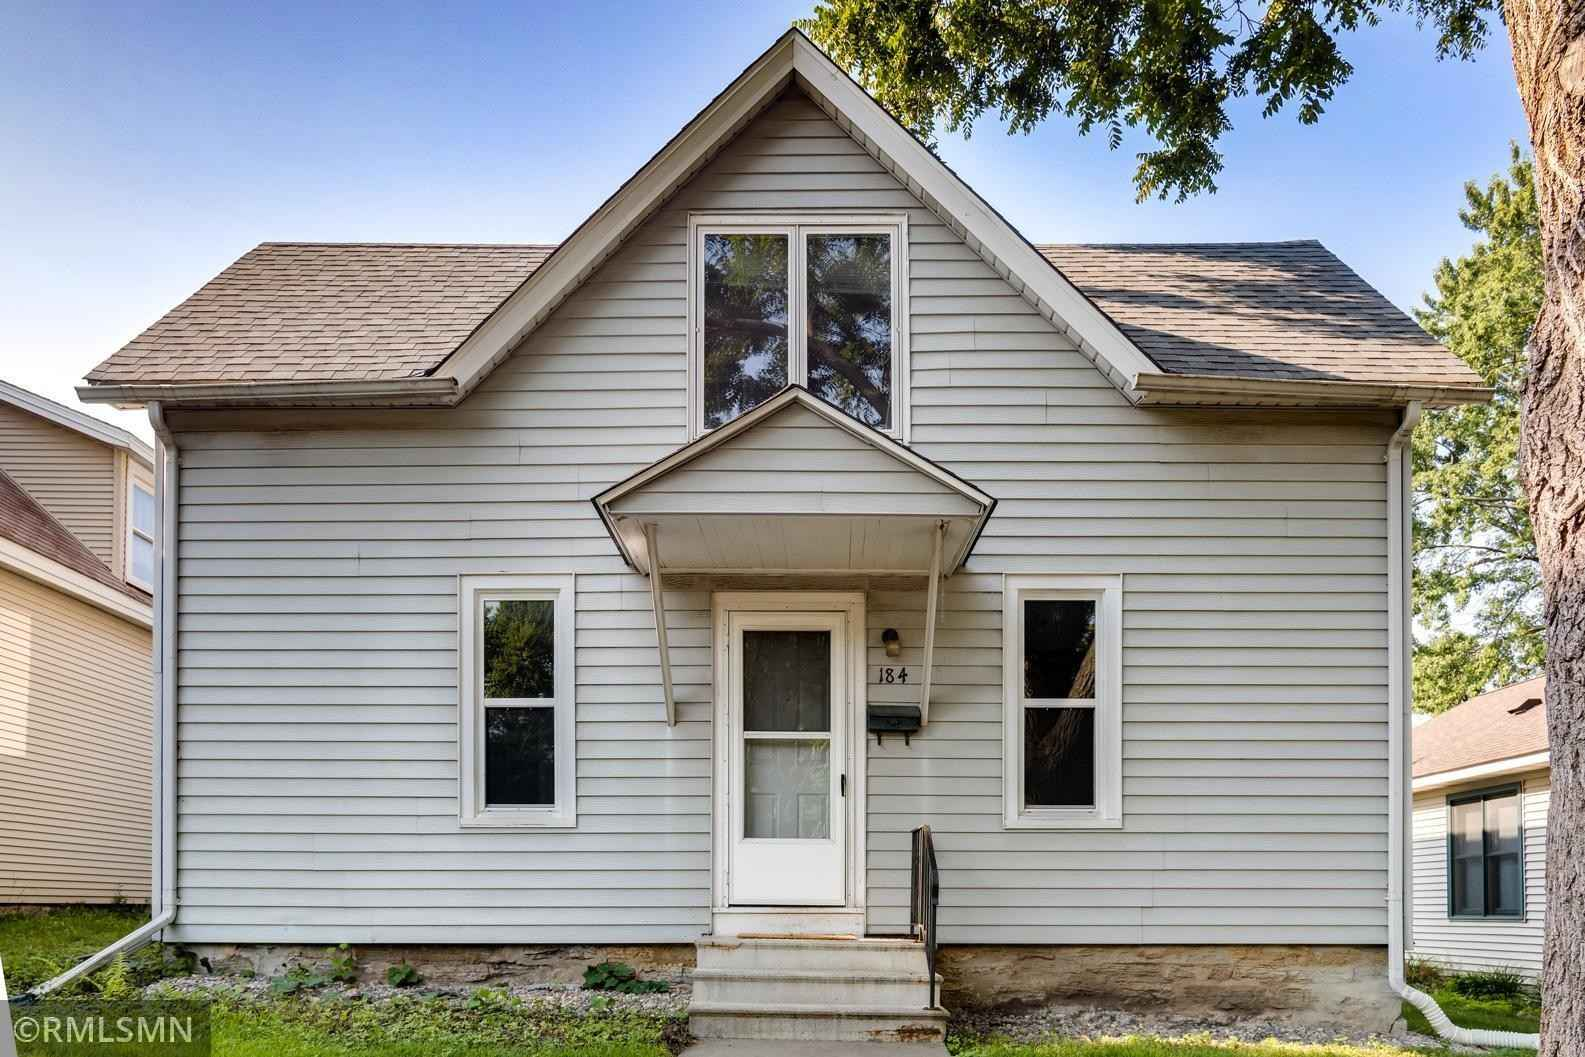 View 31 photos of this 3 bed, 1 bath, and 1,547 sqft. single_family home located at 184 Annapolis St E, West Saint Paul, Minnesota 55118 is Active for $195,000.